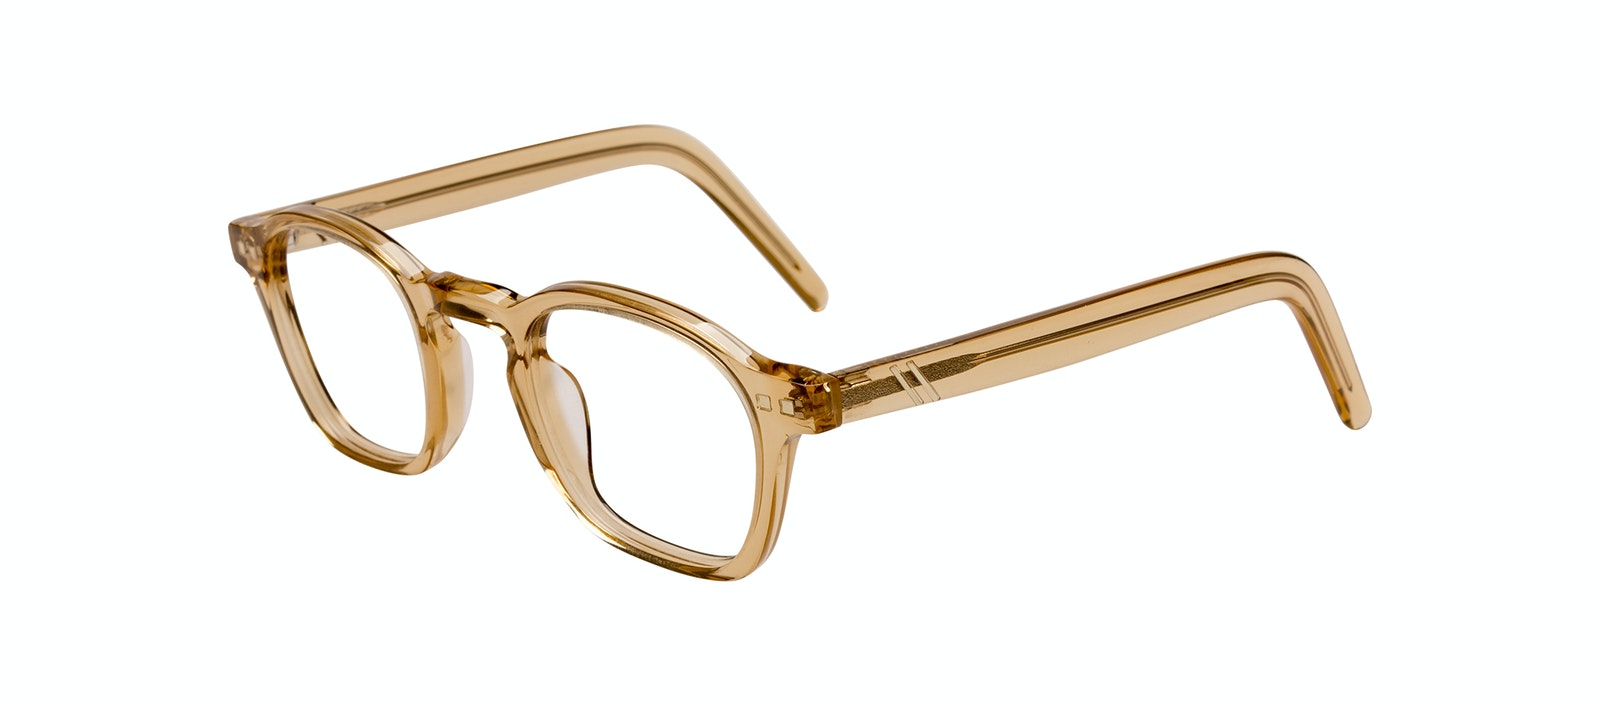 Affordable Fashion Glasses Square Eyeglasses Men Brisk Golden Tilt